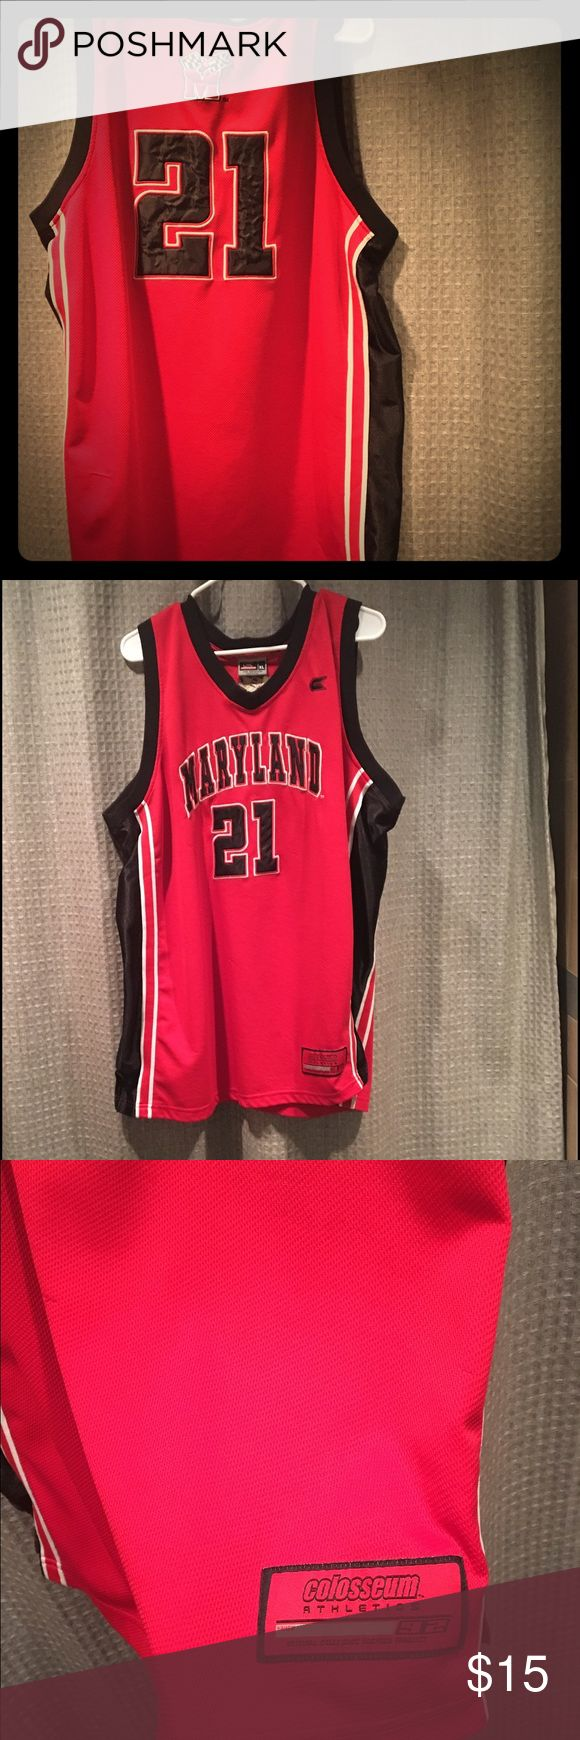 Maryland Colosseum basketball jersey🏀 This college basketball jersey has been hanging around for quite a few years, this was Grahams number jersey who scored the the single game mark of 44 points during a North Carolina game. The record still stands 🏀 I just figured I'd give a little history for anyone who isn't a basketball fan! I'm from Pittsburgh so this jersey has to go!! Of course it has some snags shown in the picture! Priced low for that reason and because I'm a Pittsburgh girl…